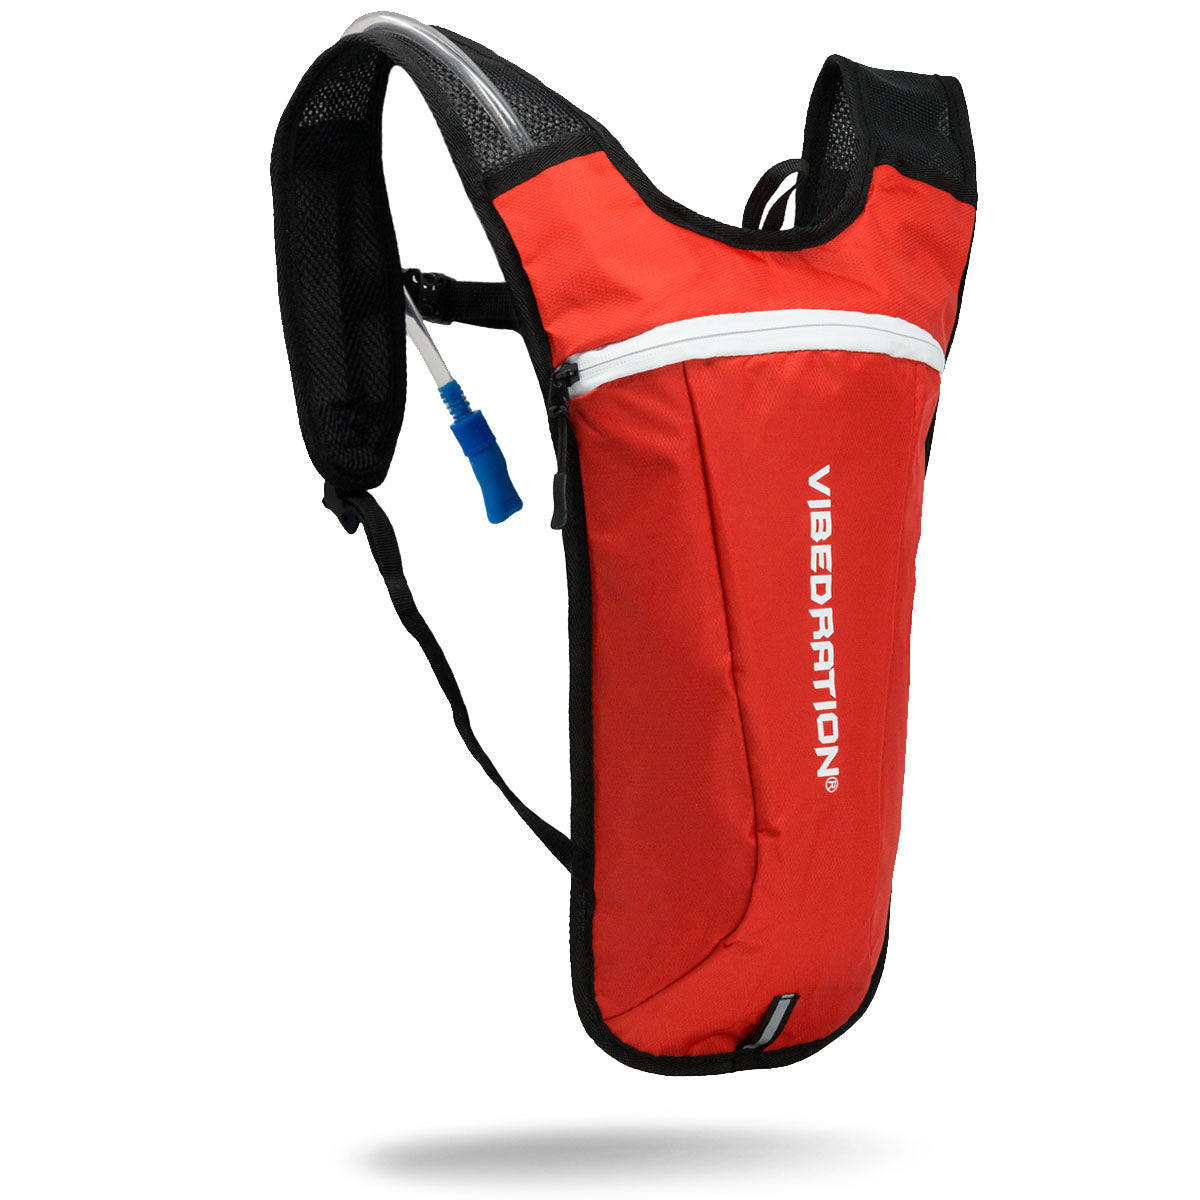 2 Liter water capacity red and white hydration pack for raves